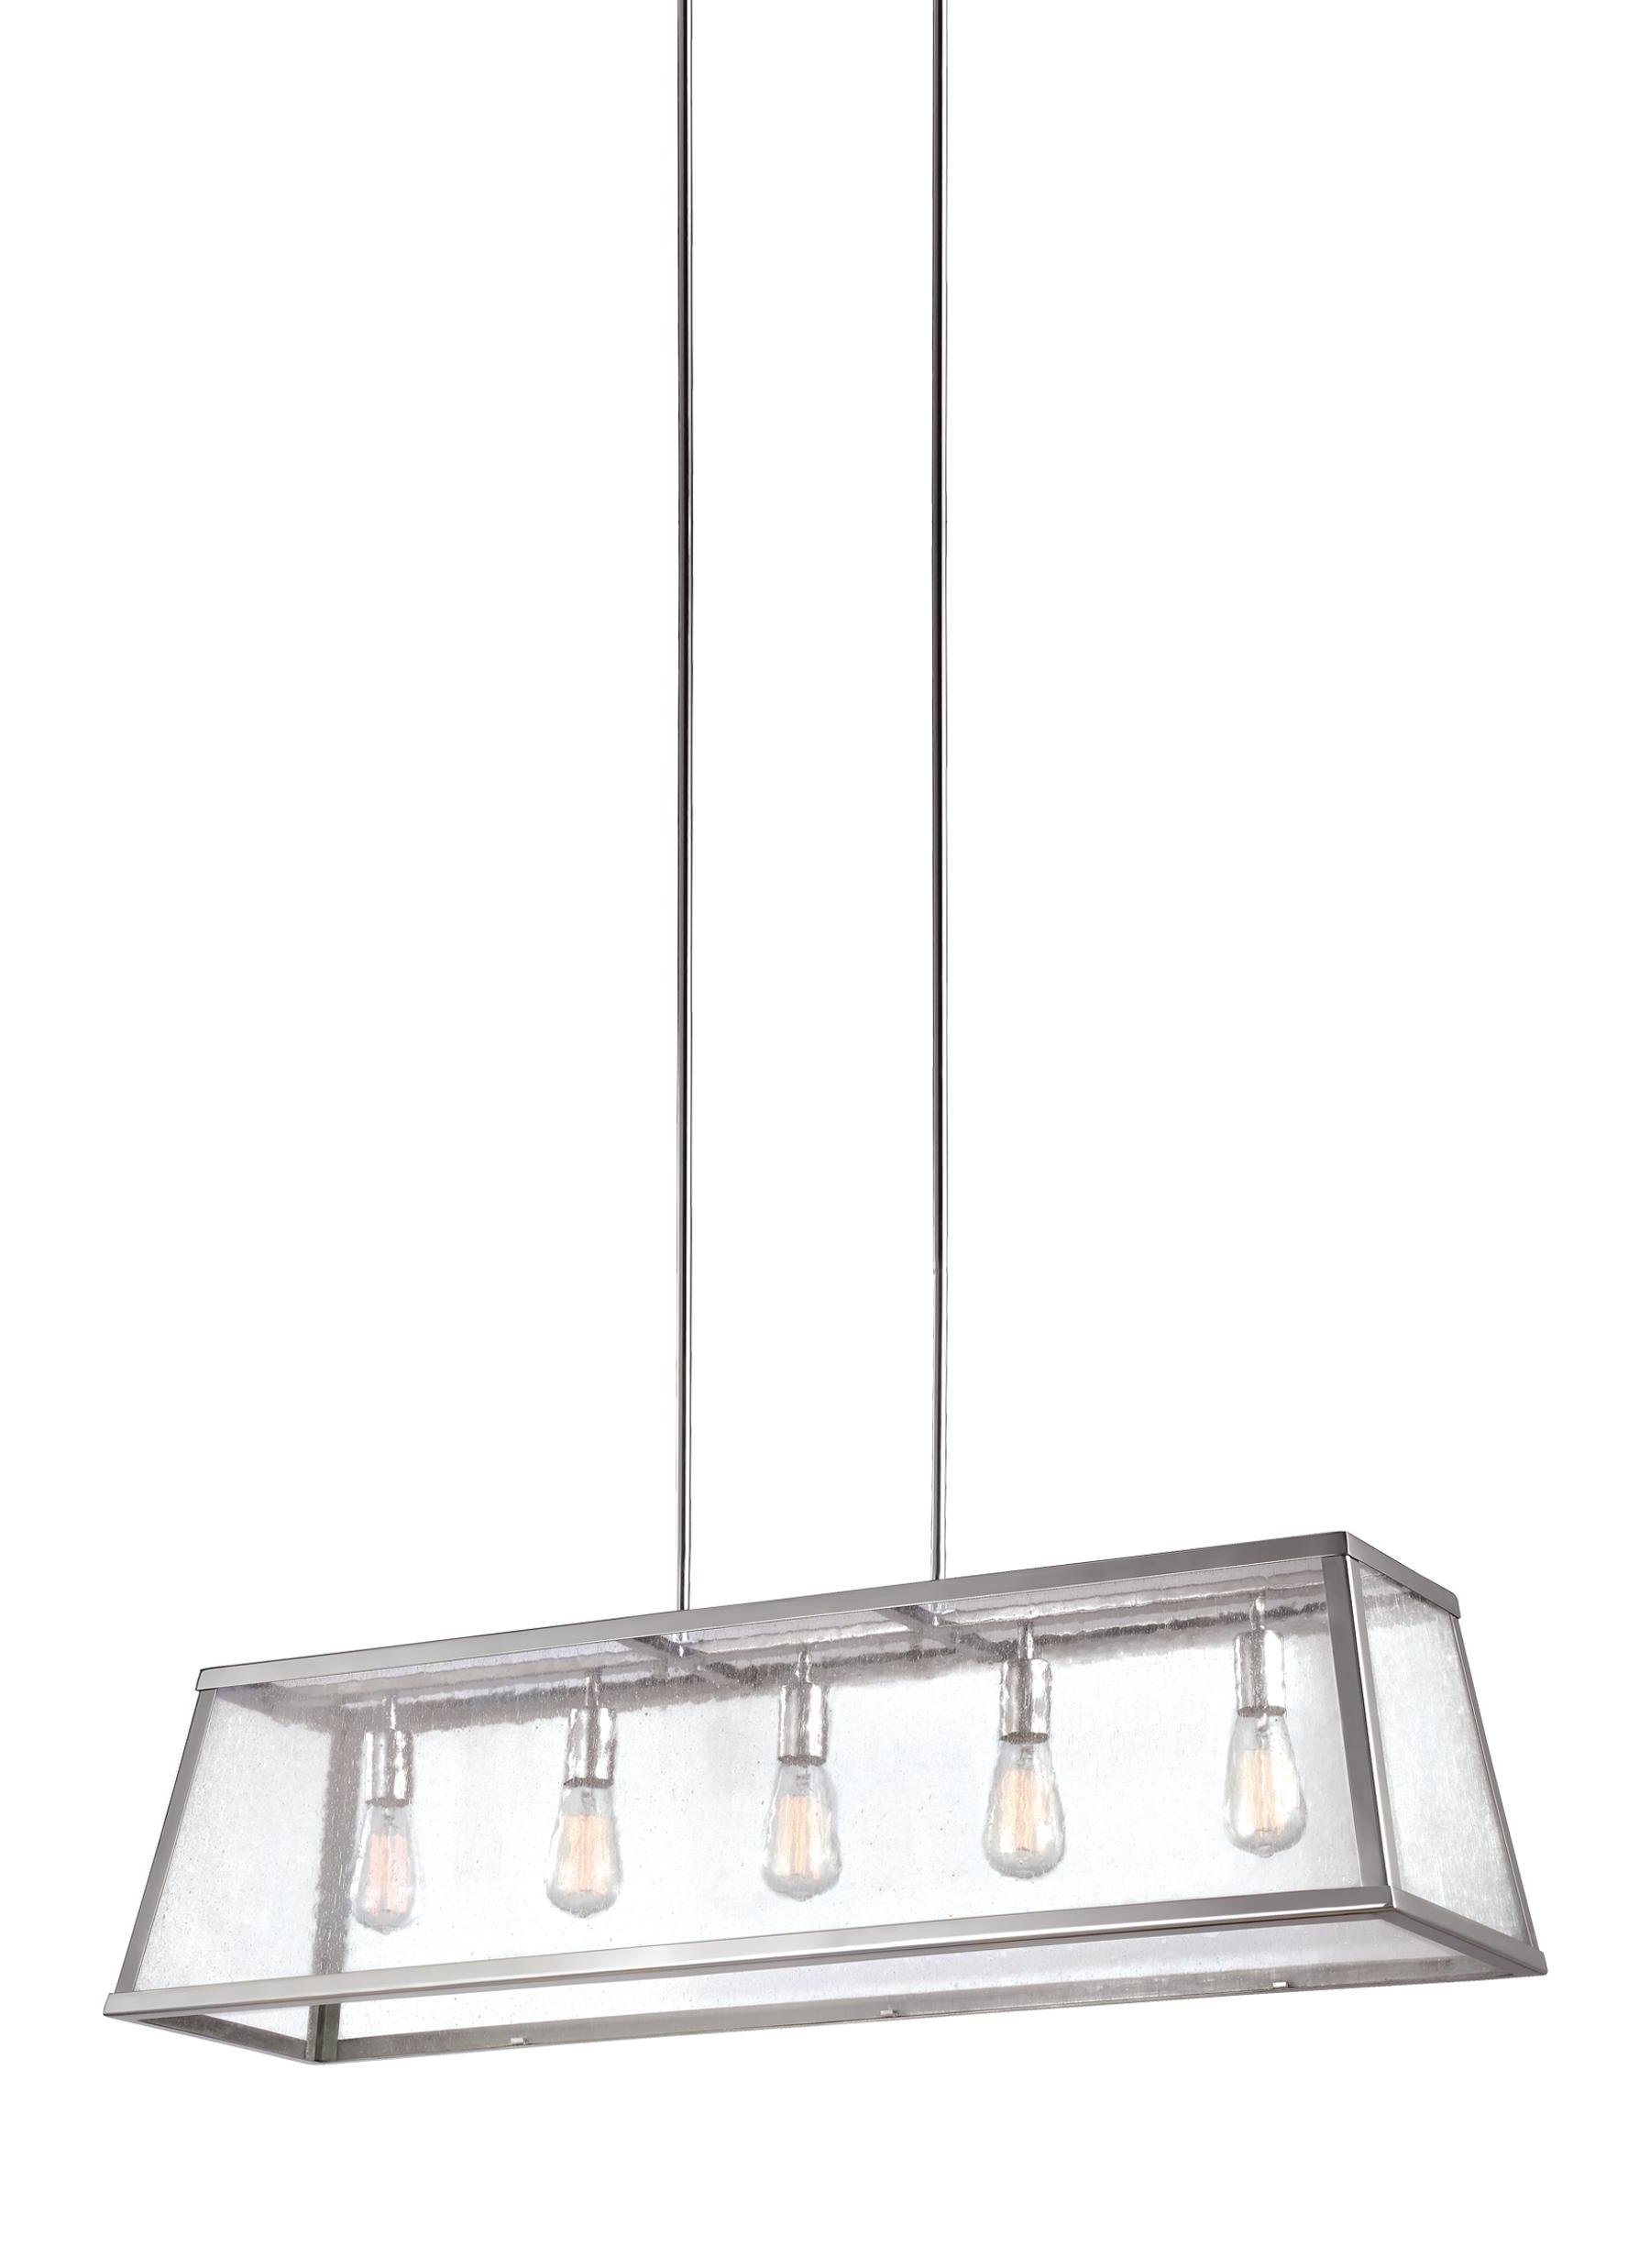 Marlowe 5 Light Kitchen Island Linear Pendant With Most Up To Date Hinerman 5 Light Kitchen Island Pendants (Gallery 17 of 20)